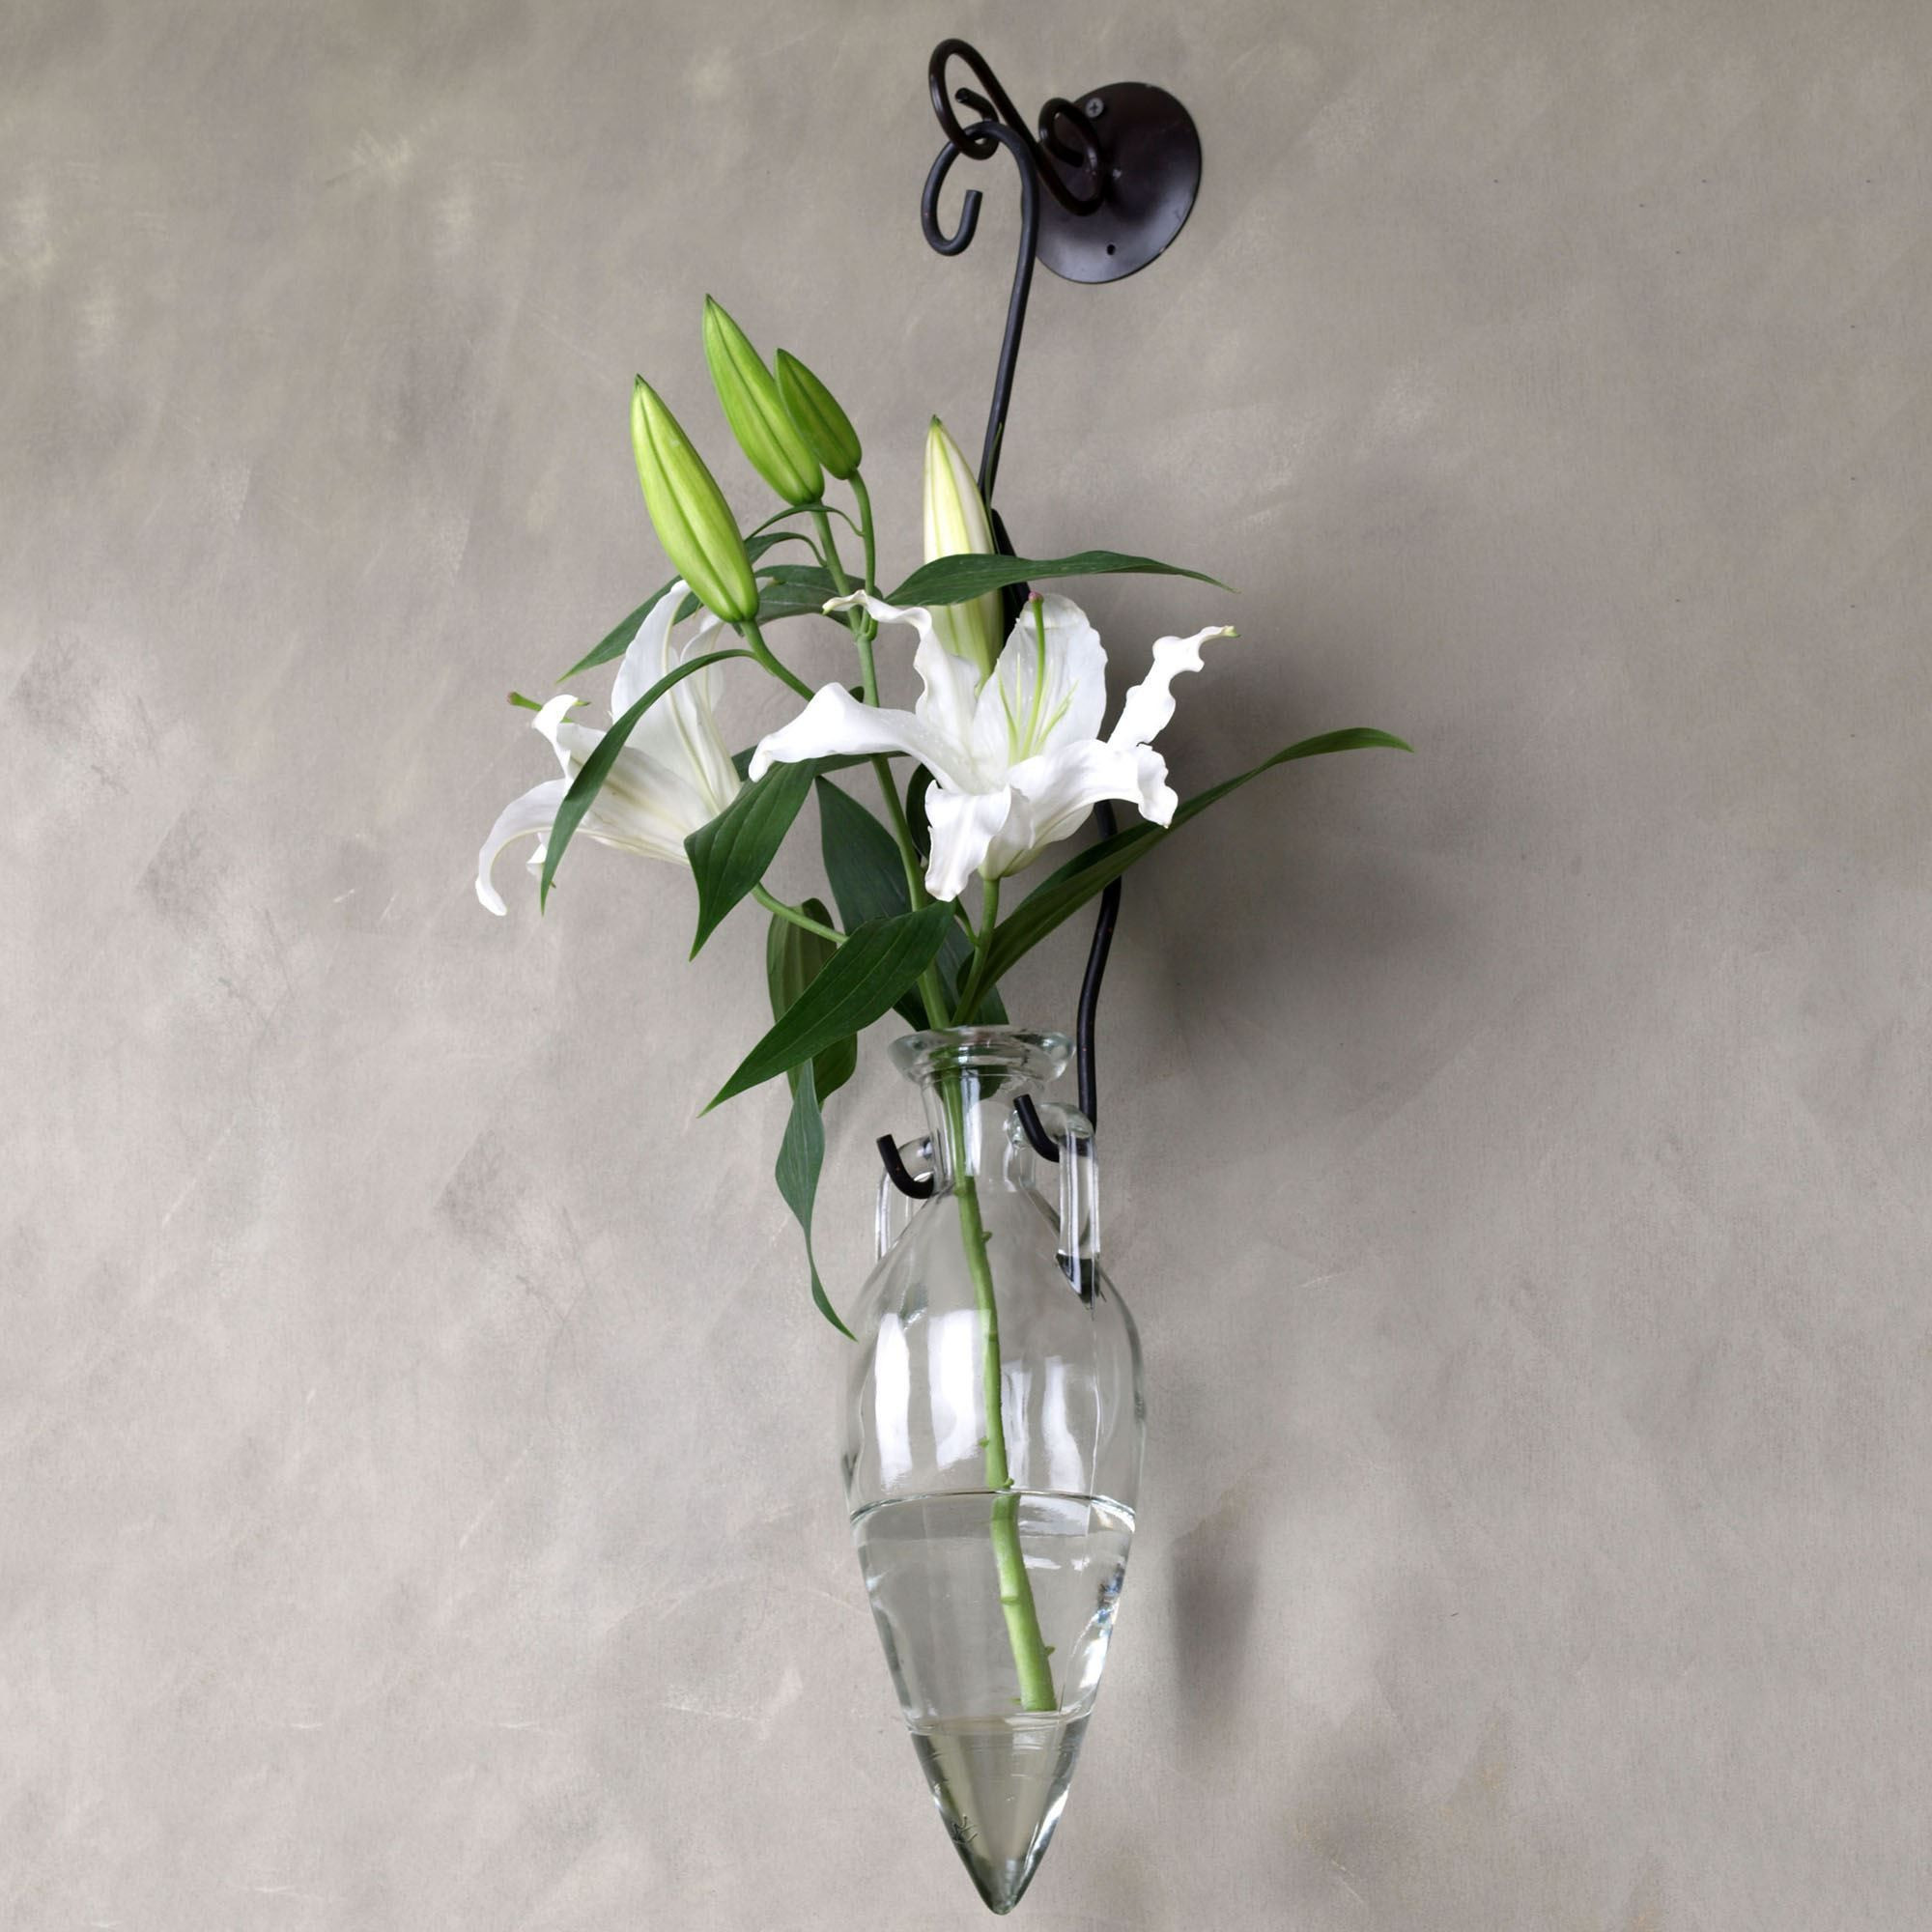 block crystal tulip vase of 24 types of vases for flowers the weekly world within h vases wall hanging flower vase newspaper i 0d scheme wall scheme